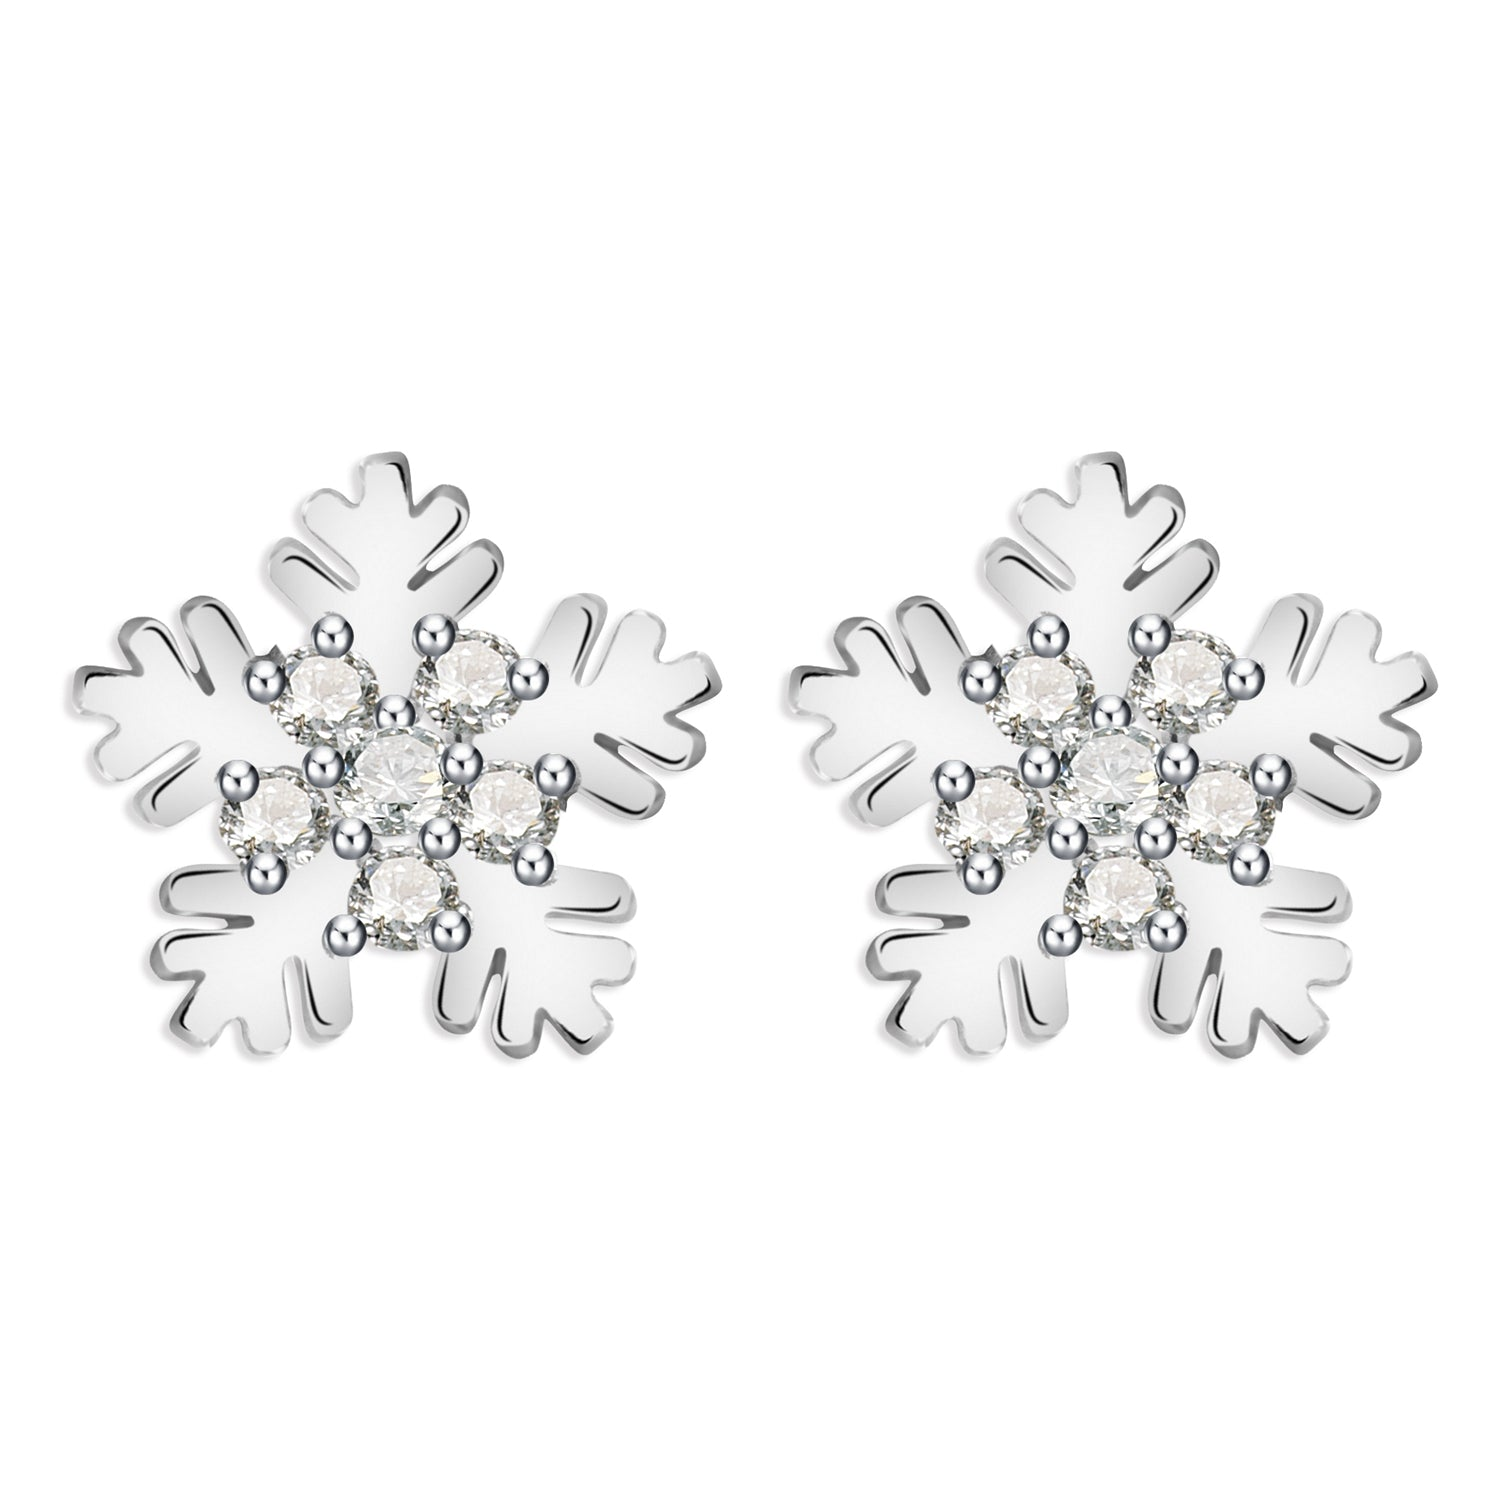 Elsa Sterling Silver Earrings